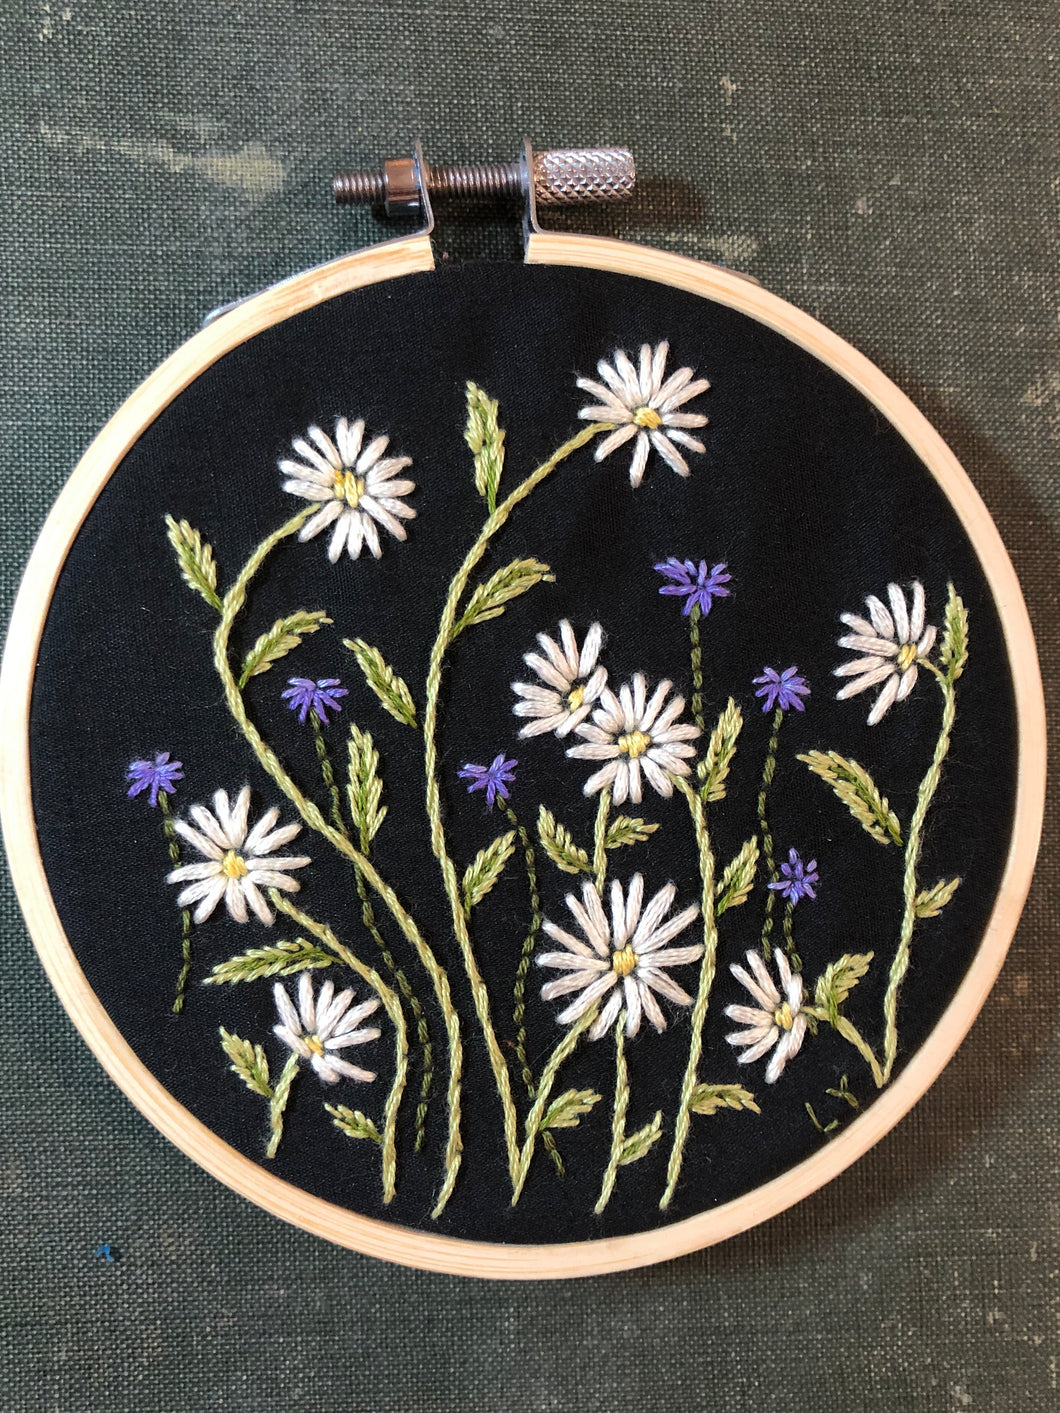 Daisies and bachelor buttons